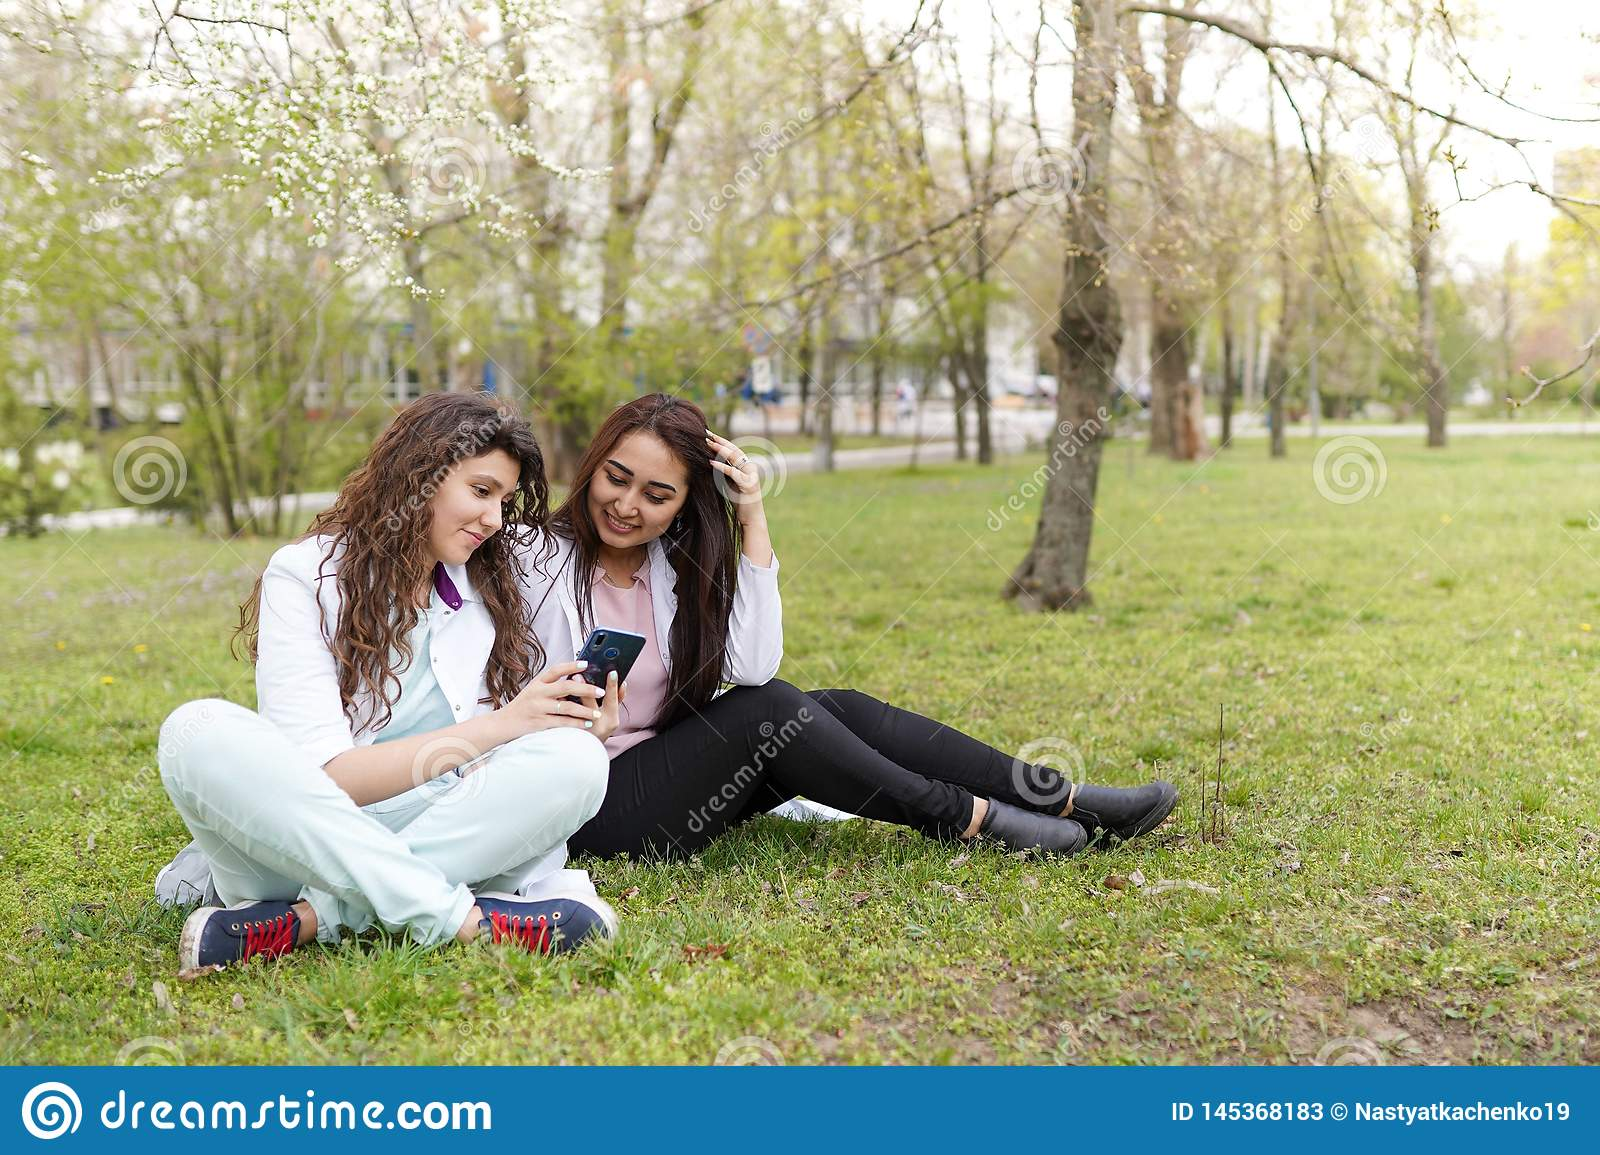 Female doctors student outdoors with phone. medical background . concept of education. students near hospital in flower garden.